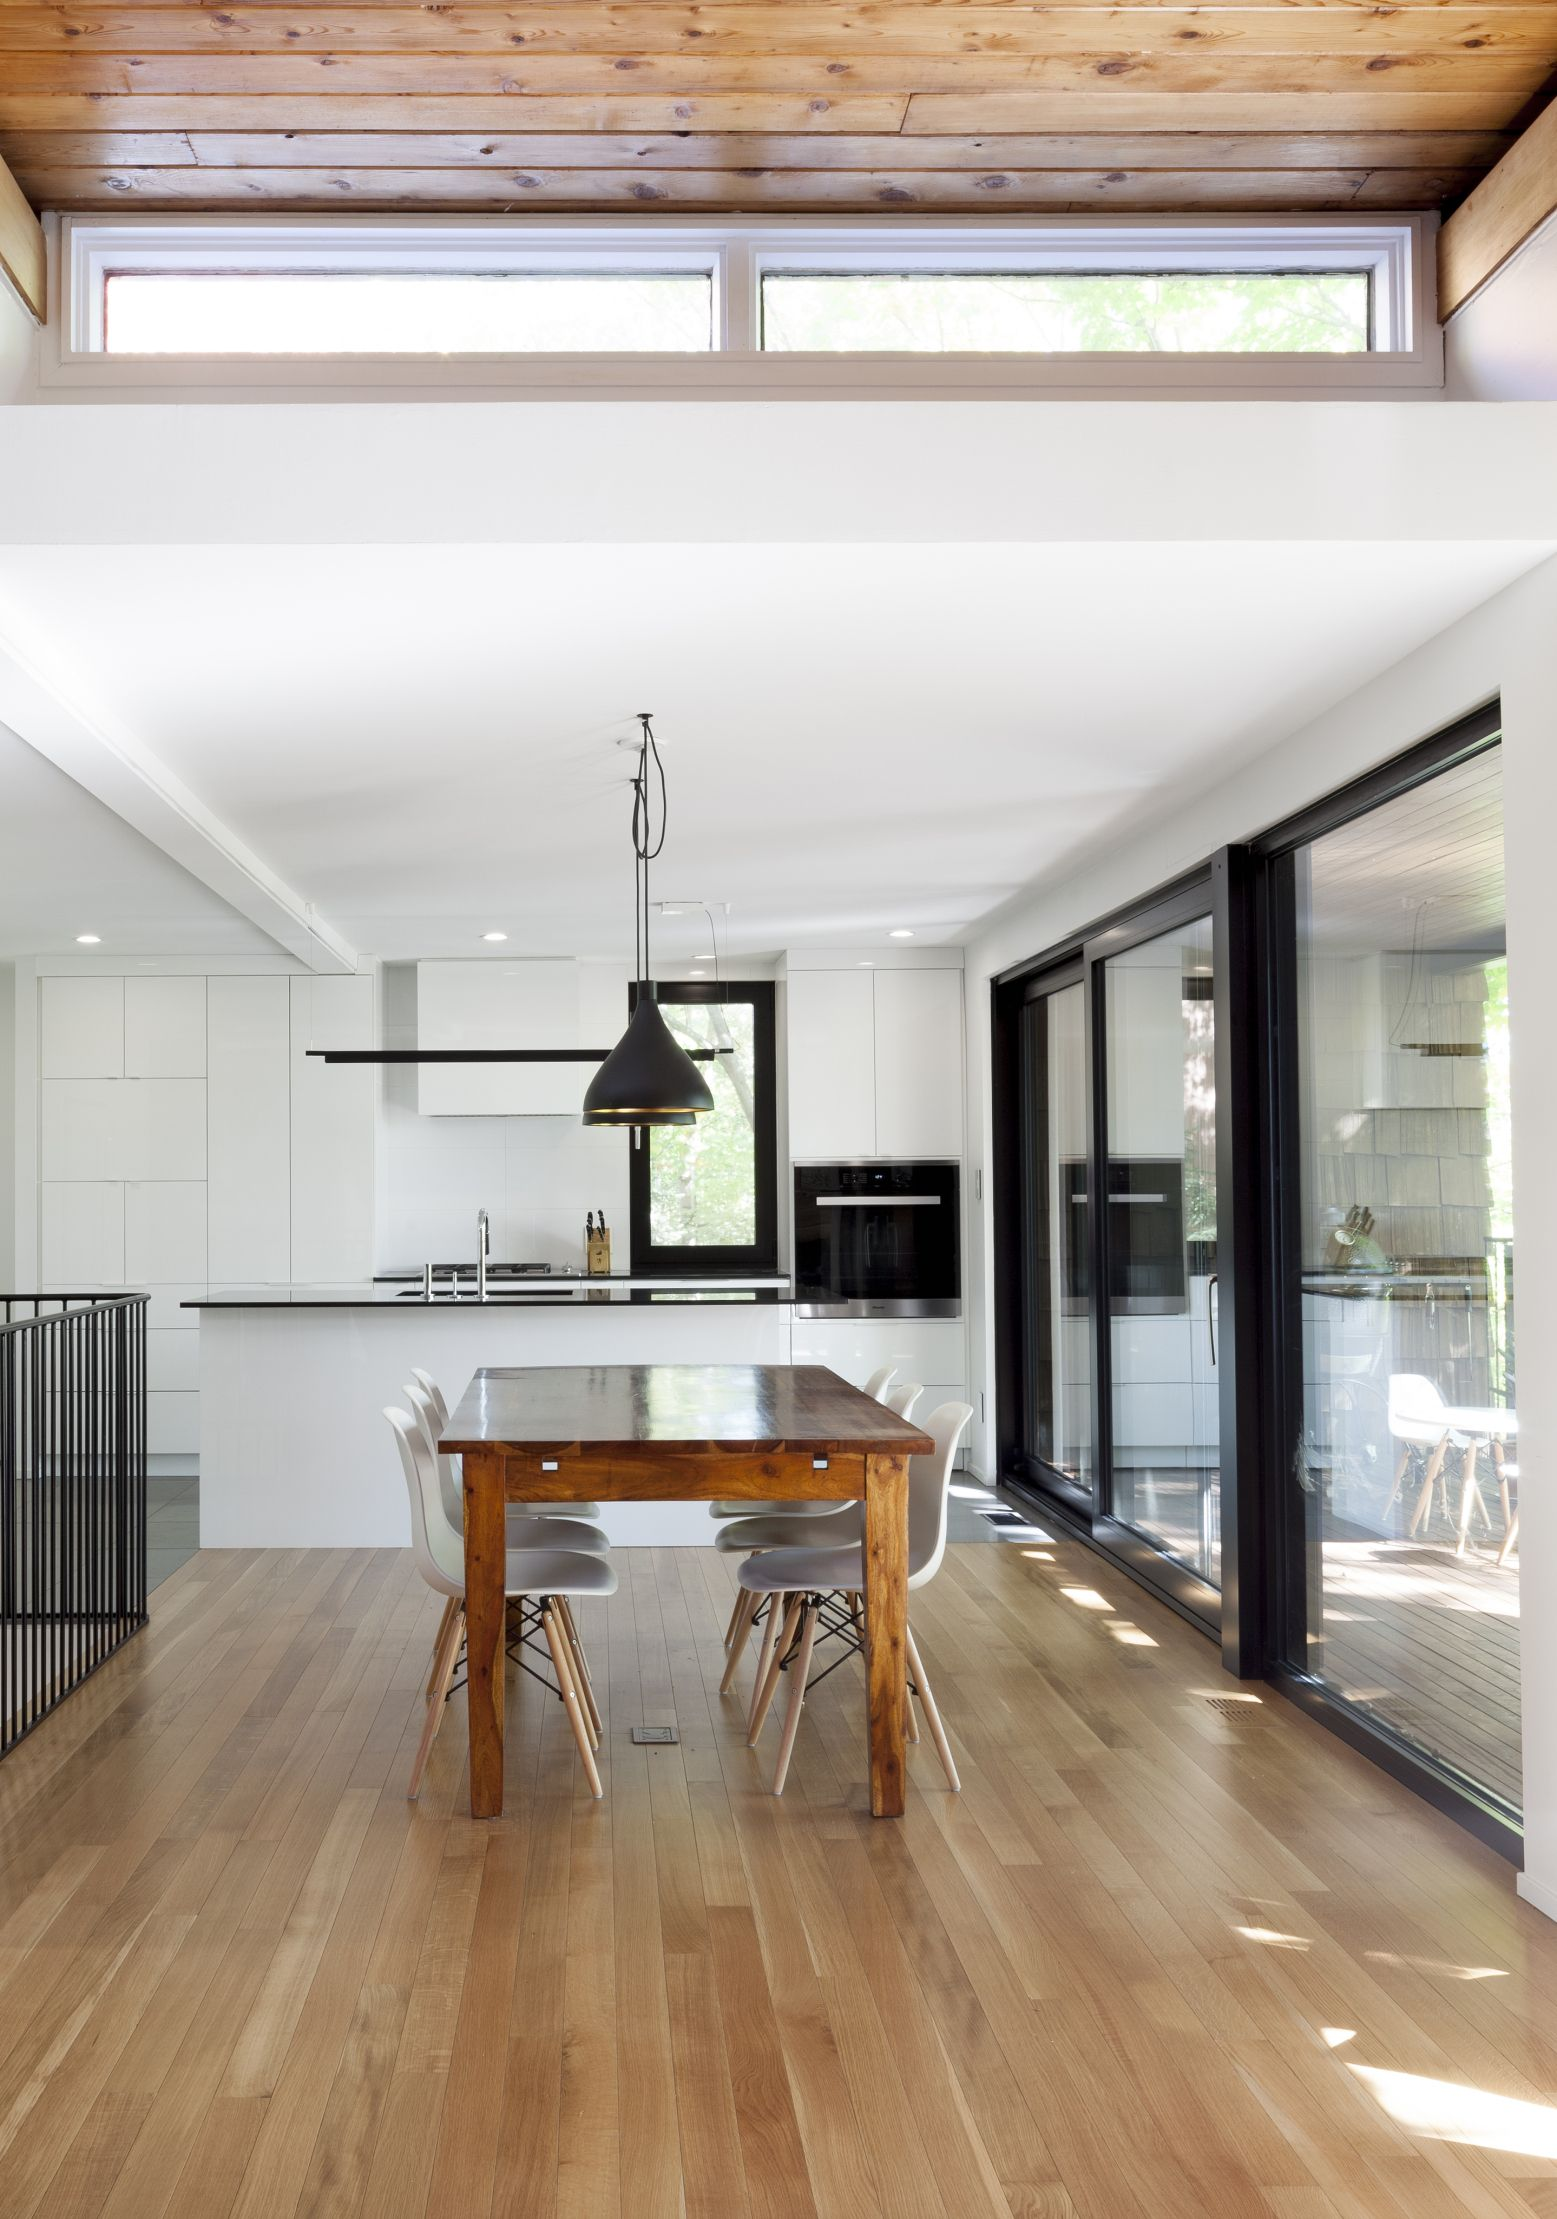 Dining room and kitchen interior design, white walls, wood floors ...